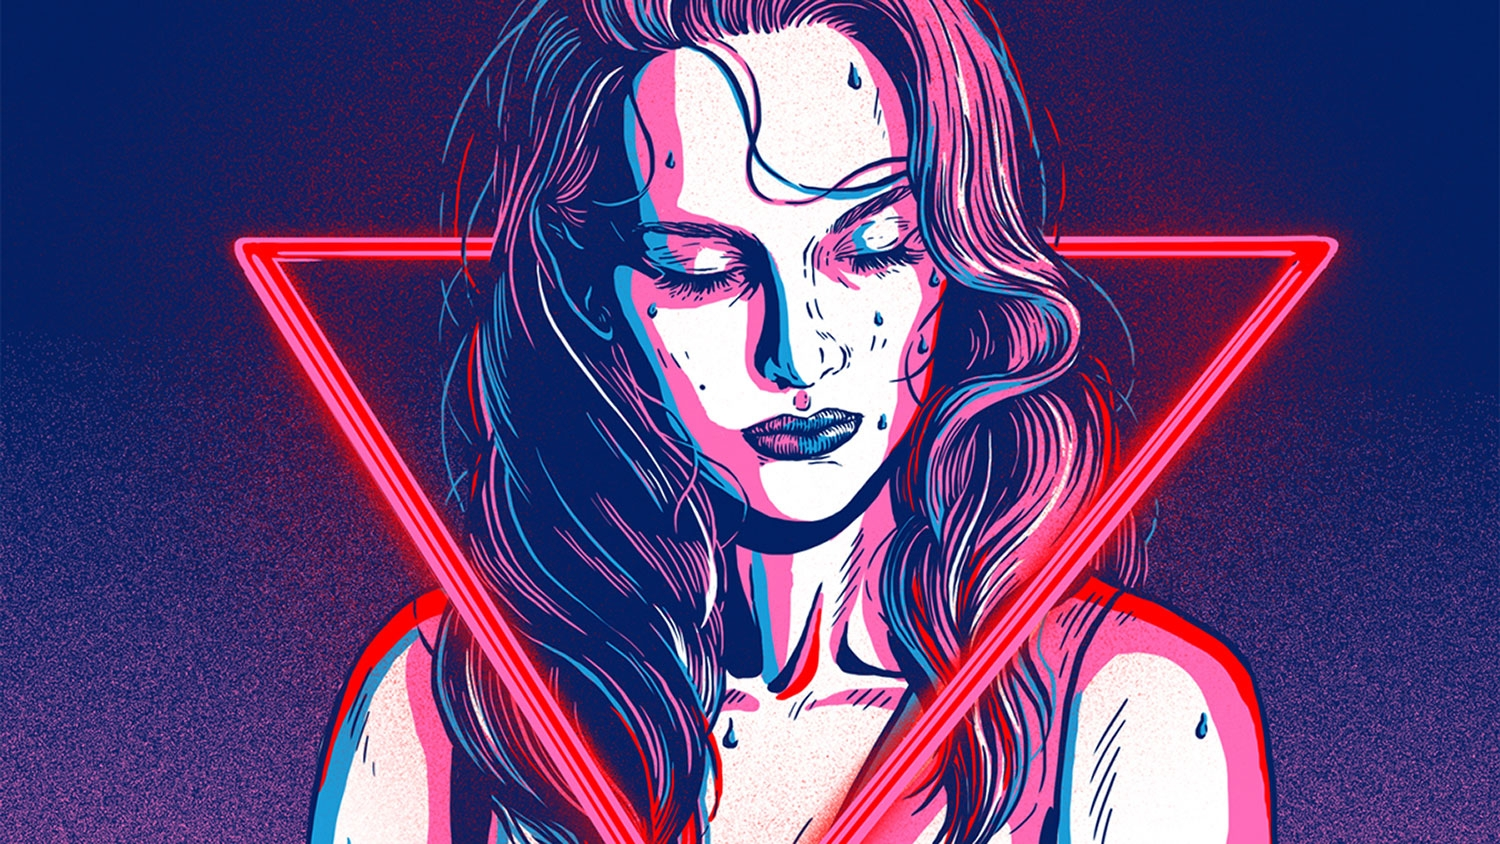 These Neon Demon Illustrations Are Both Seductive And